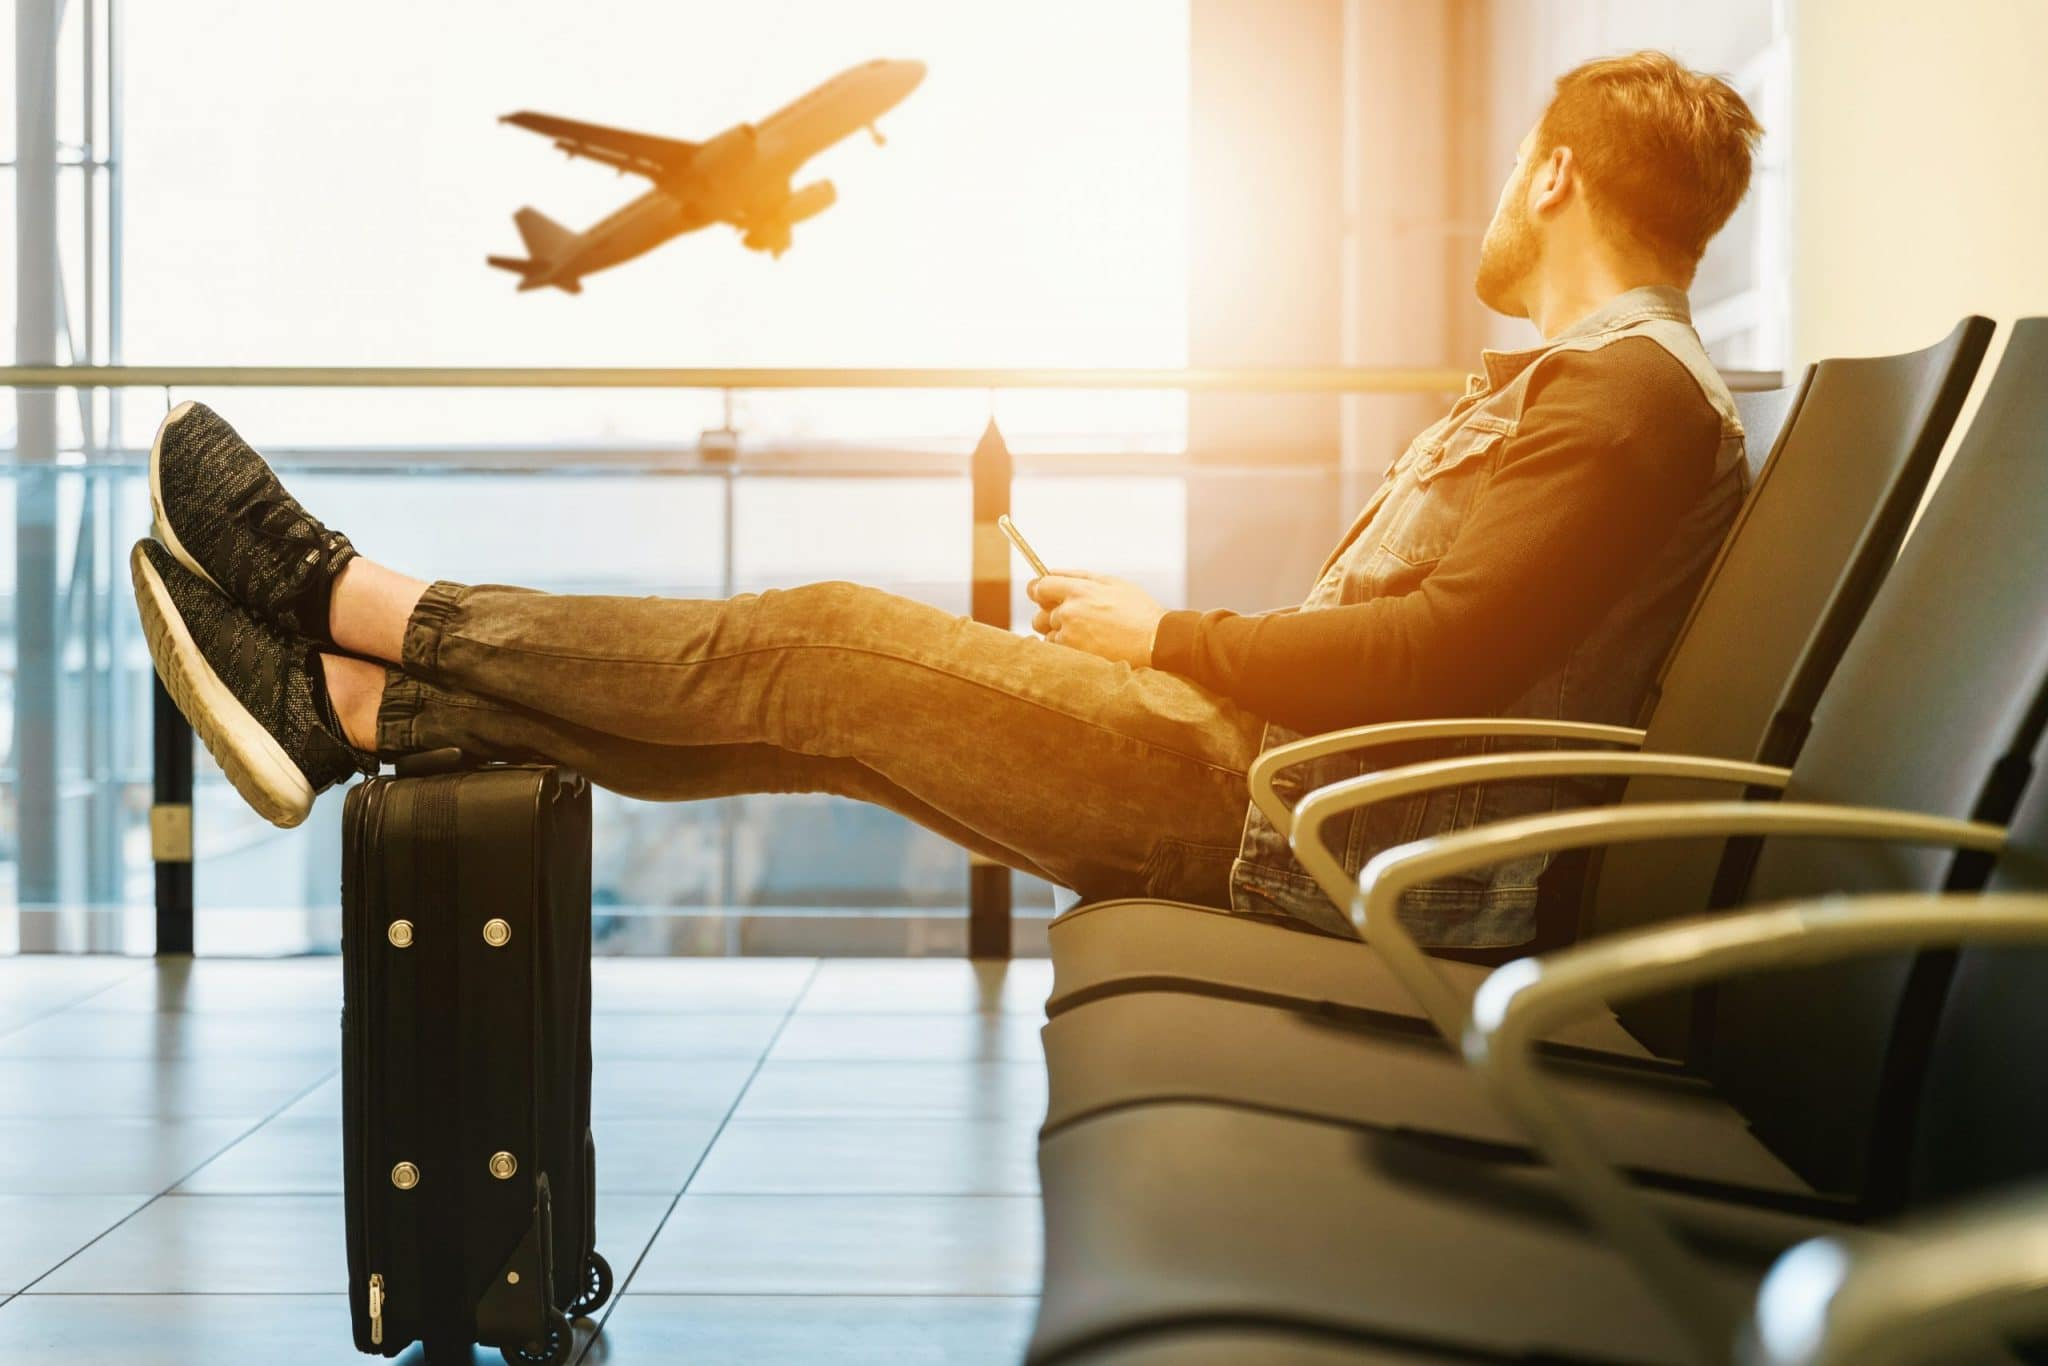 Man waits in airport as plane takes off in the background